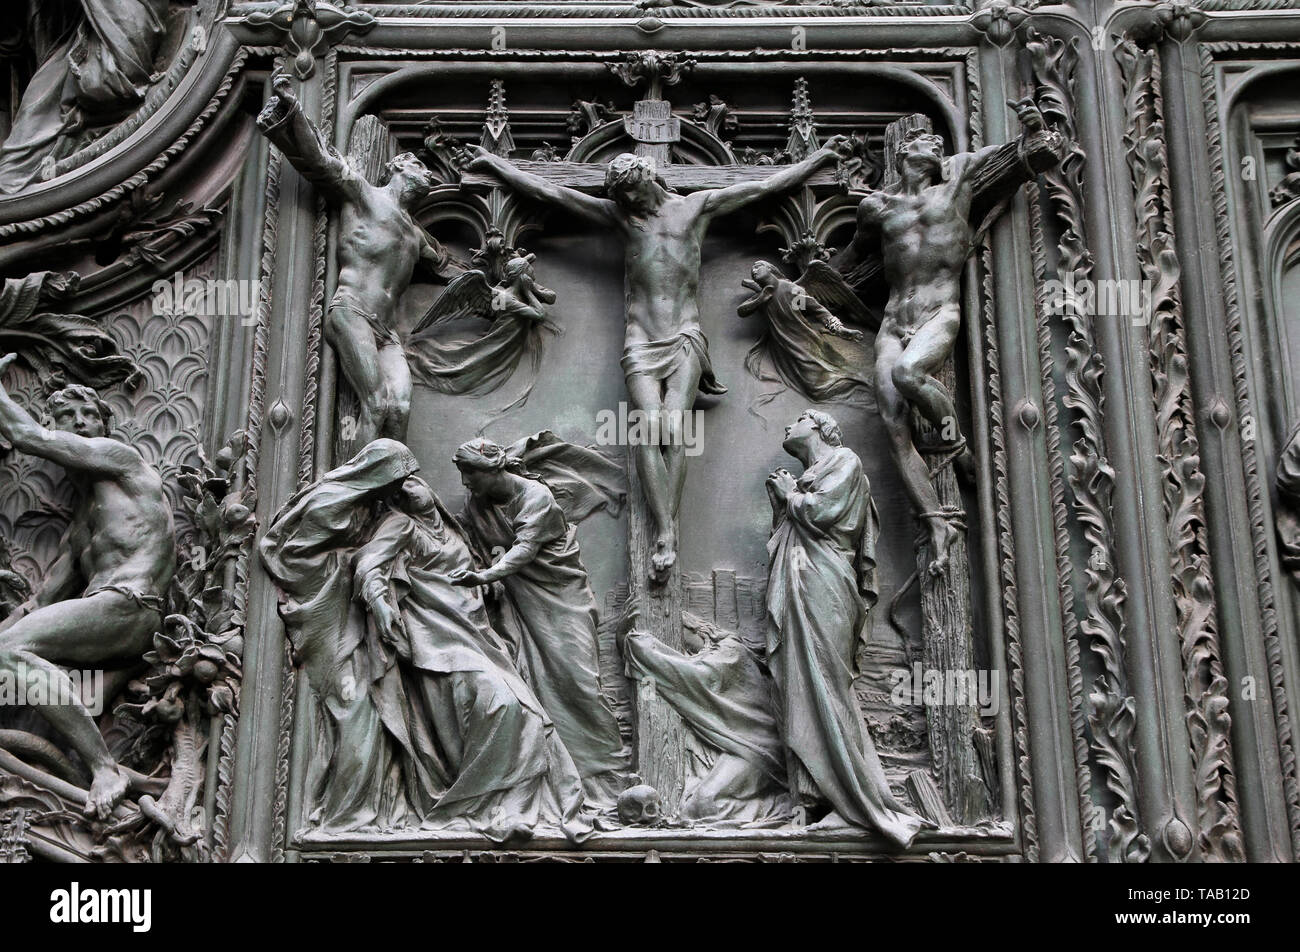 Milan, Italy. Famous landmark - the cathedral door. Jesus Christ crucified on the Cross - biblical story. - Stock Image